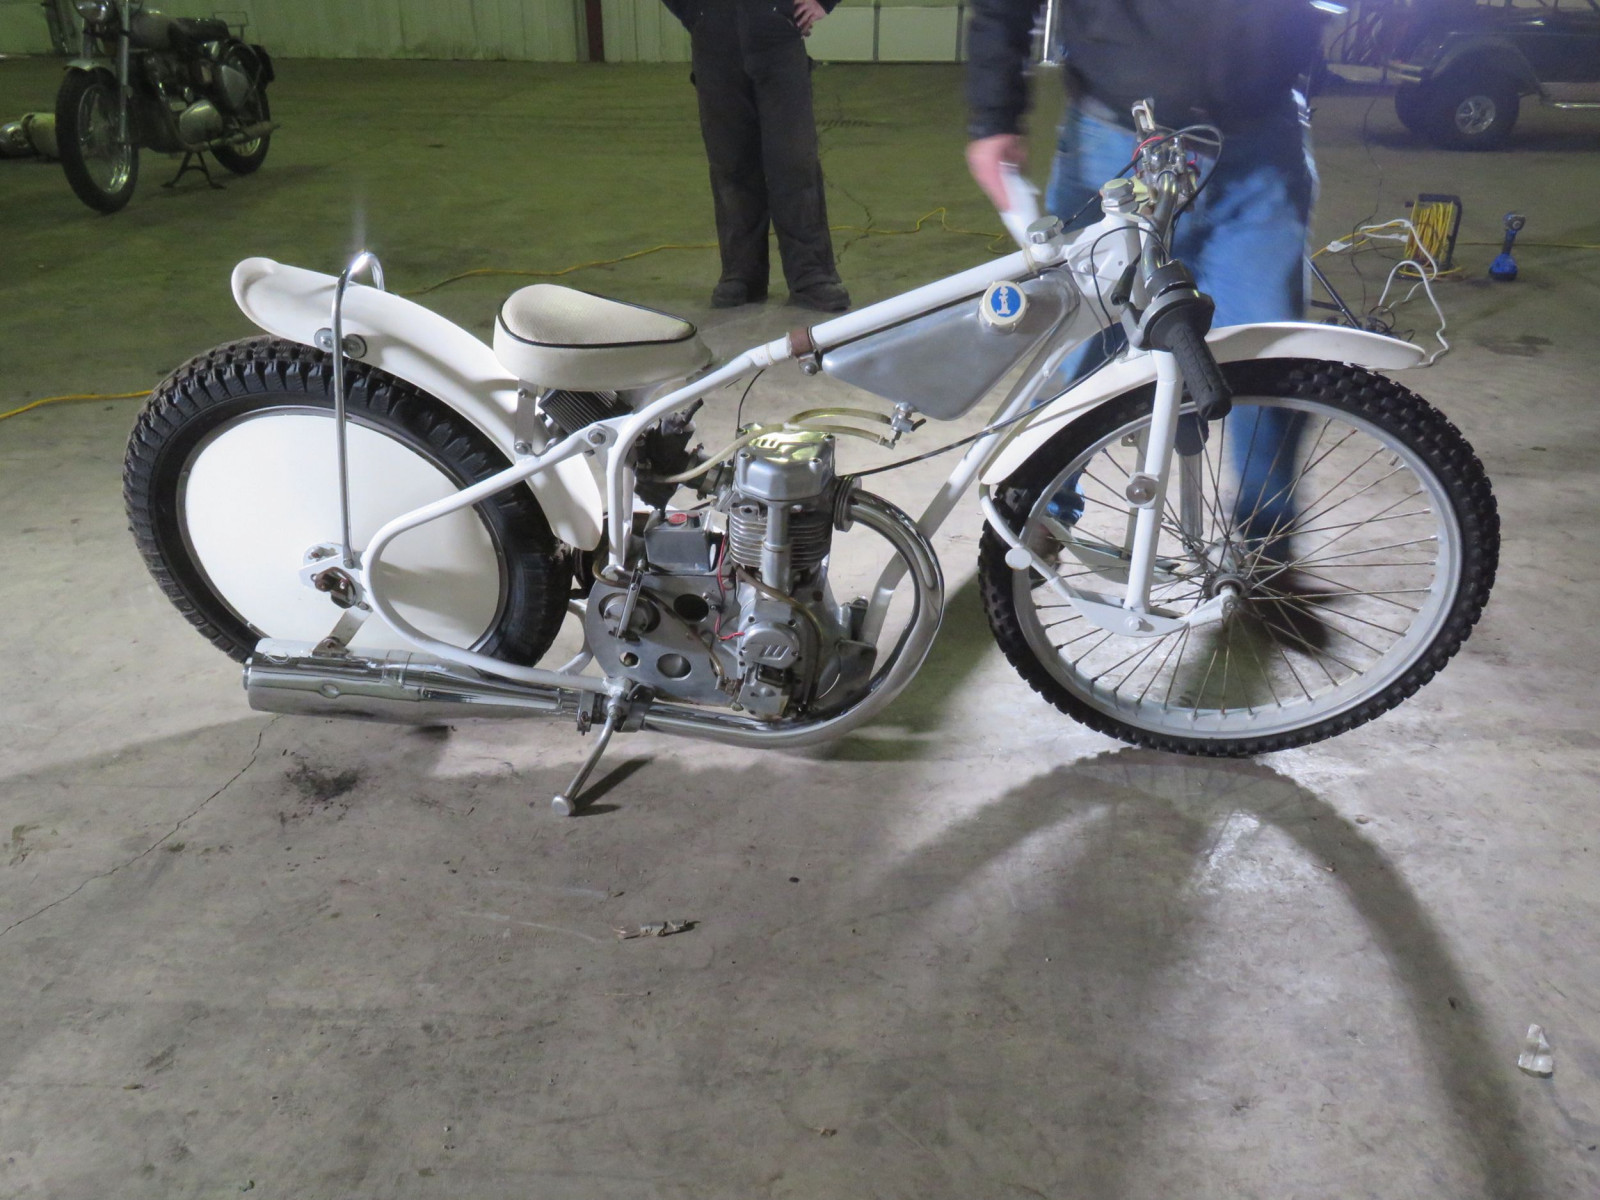 Speedway Racer Motorcycle - Image 5